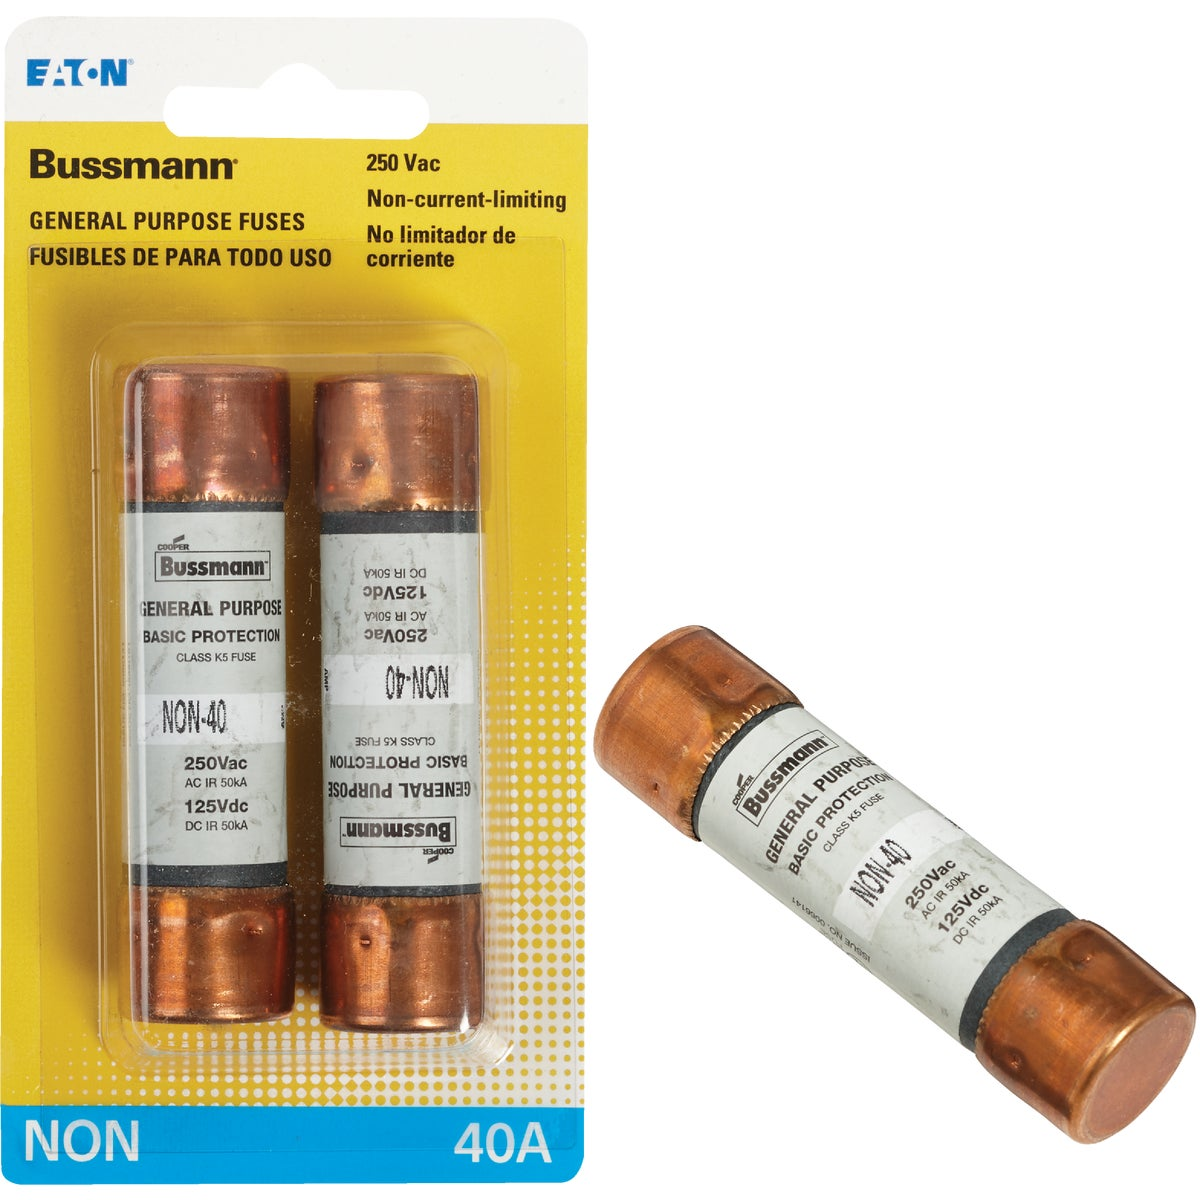 40A NON CARTRIDGE FUSE